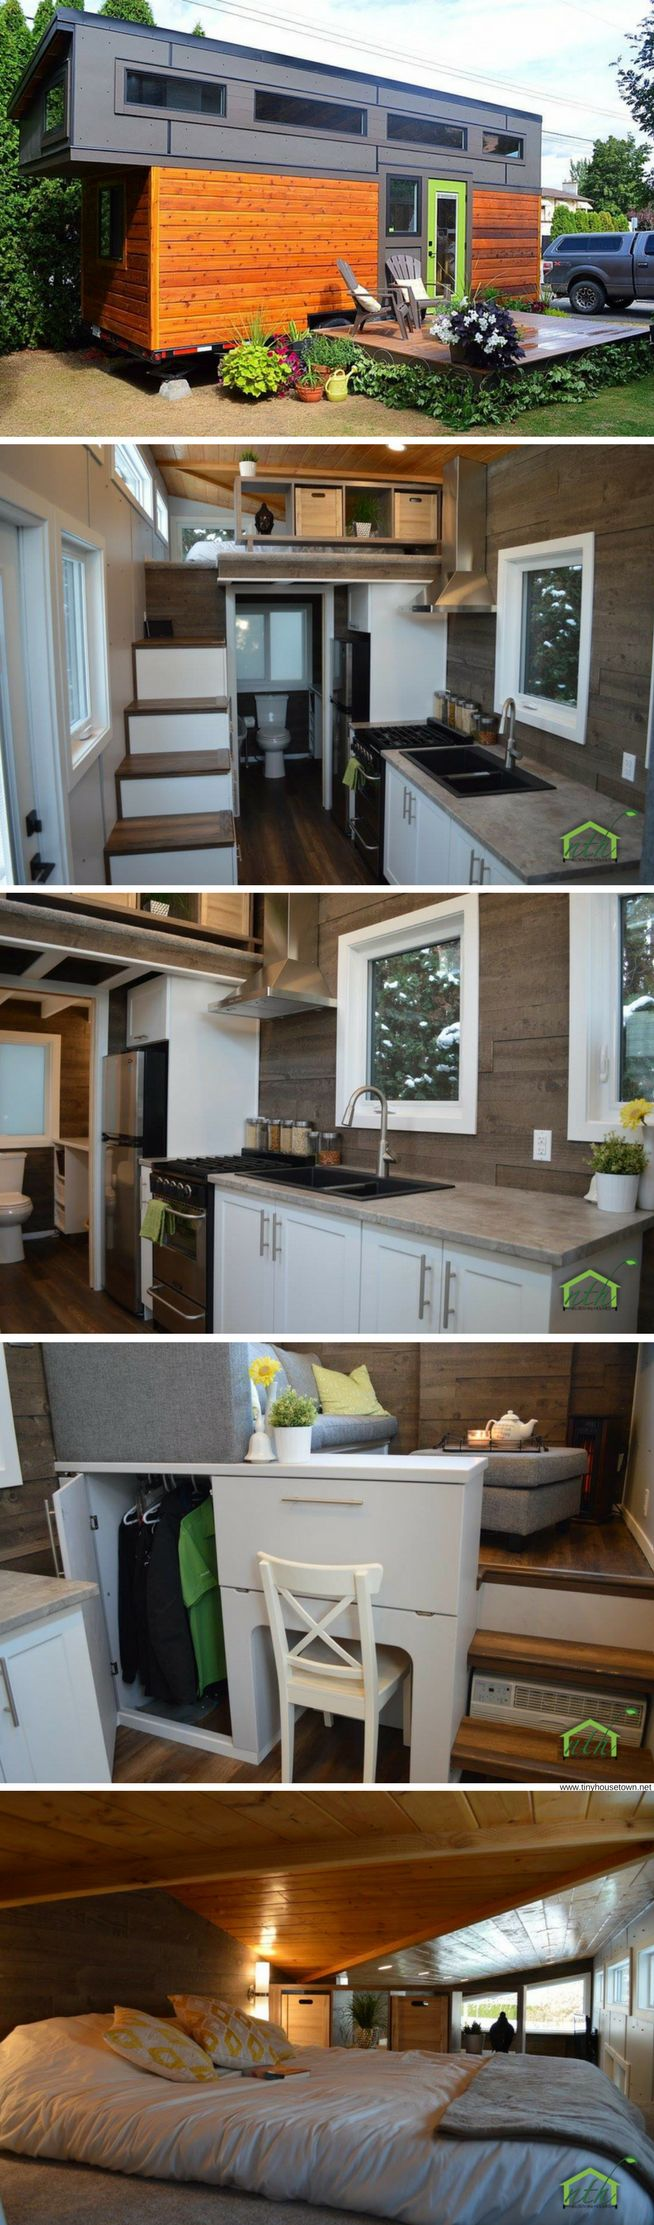 The Pursuit: a 280 sq ft tiny house with a modern/rustic design!